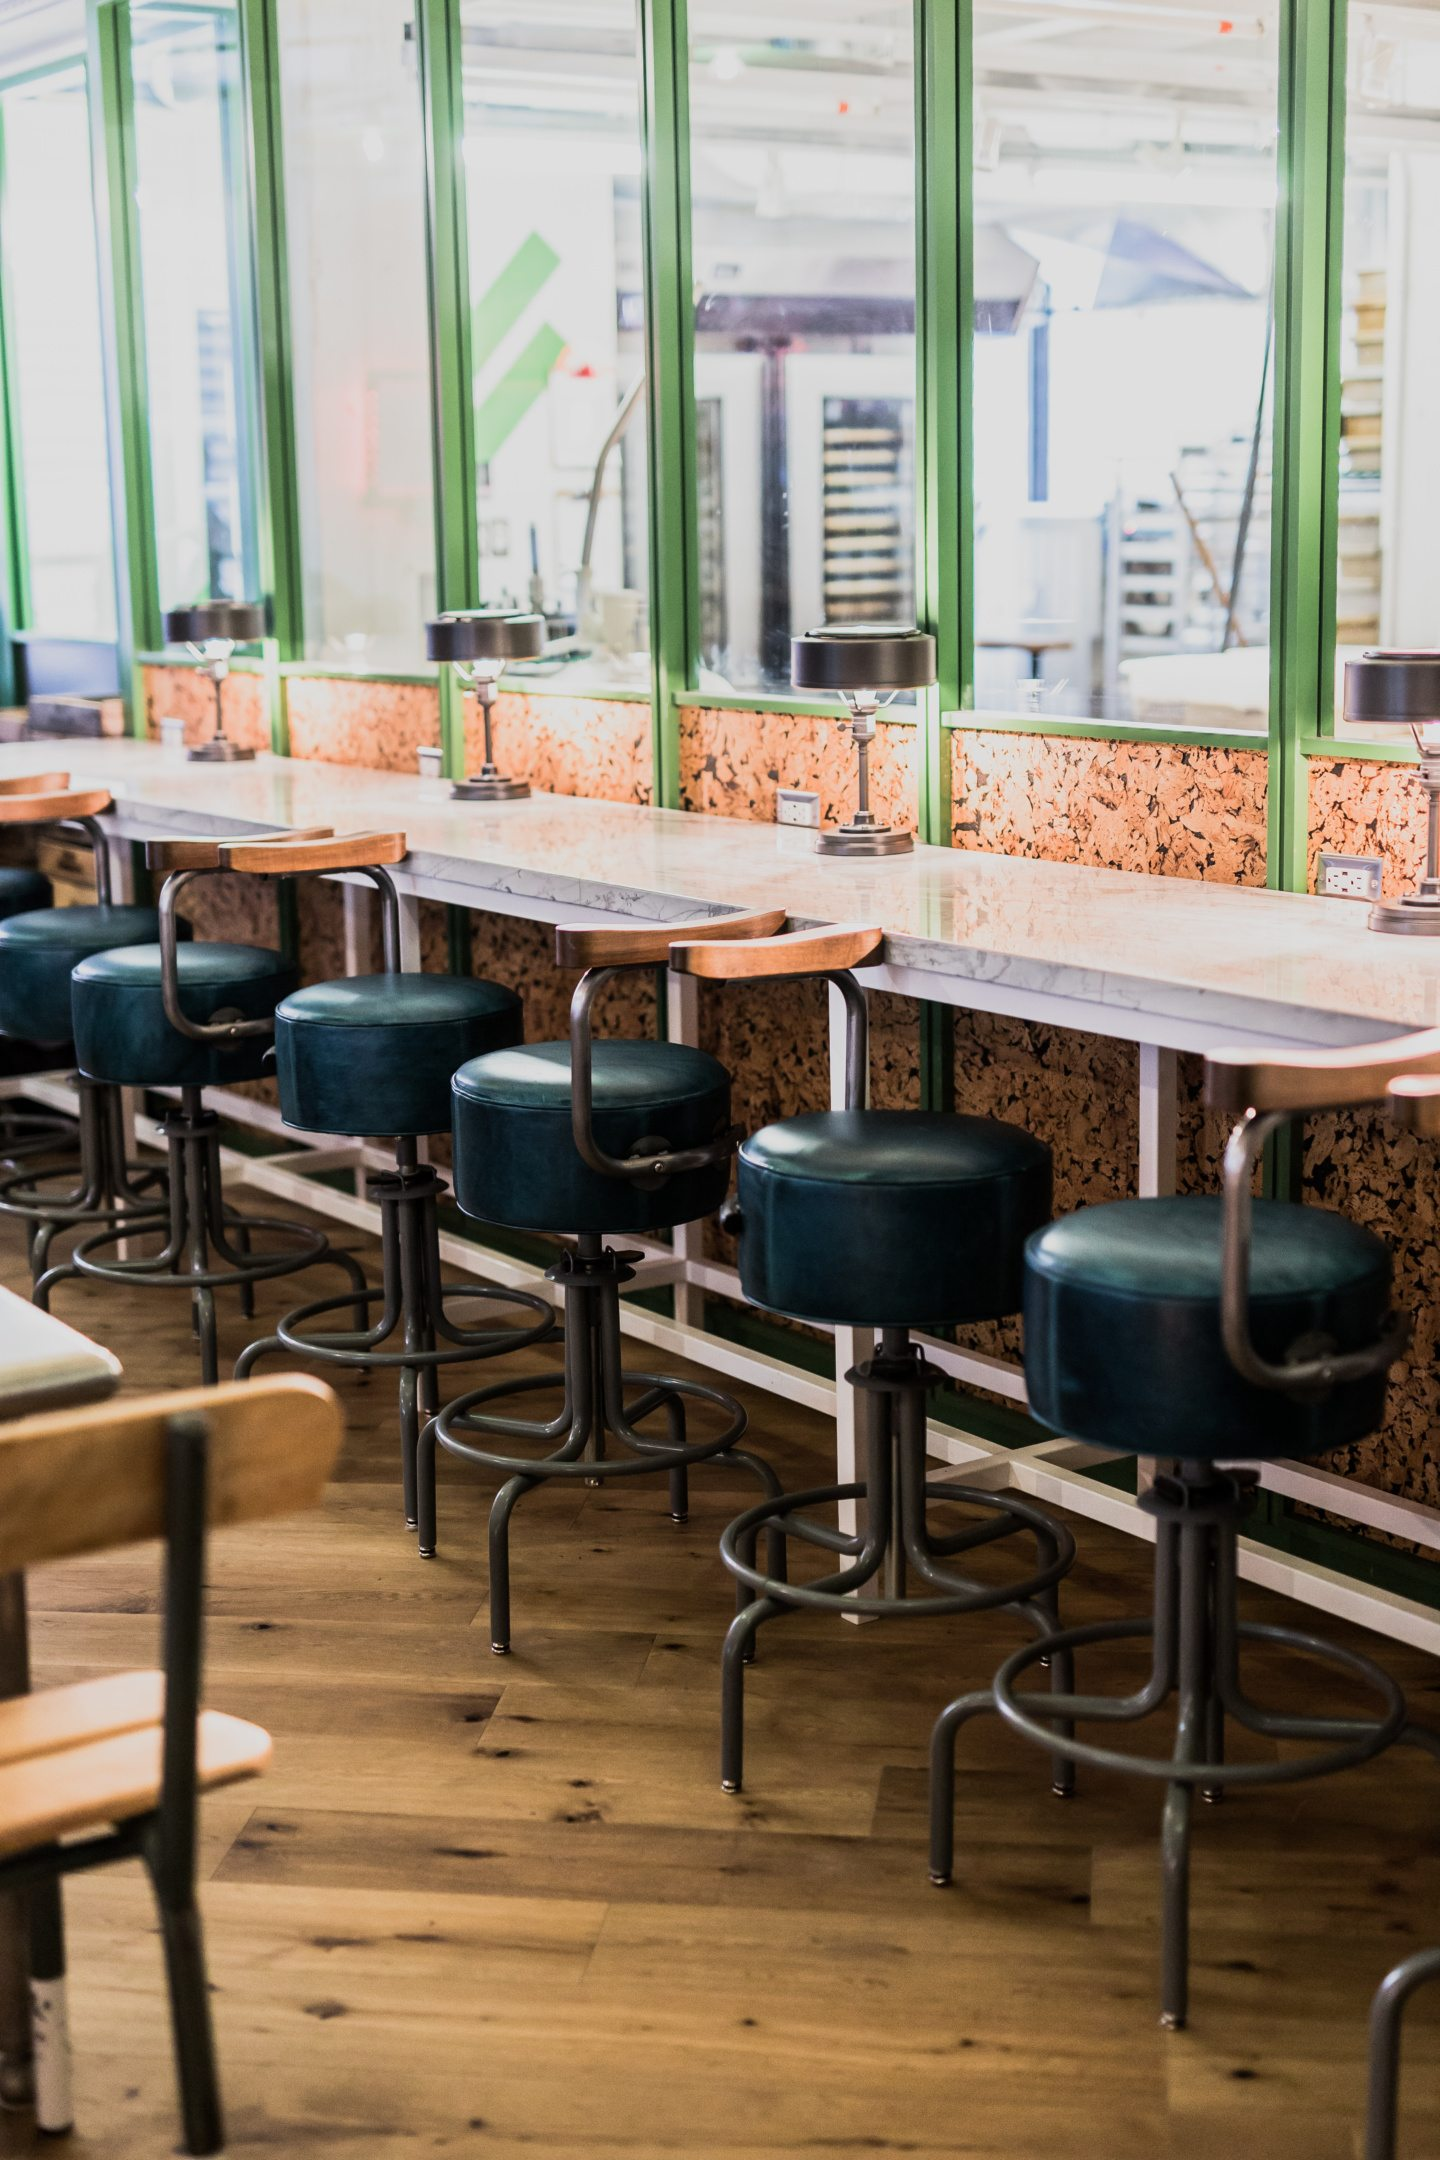 These seats have a view of all the kitchen activity. Photo by Kayla Rocca